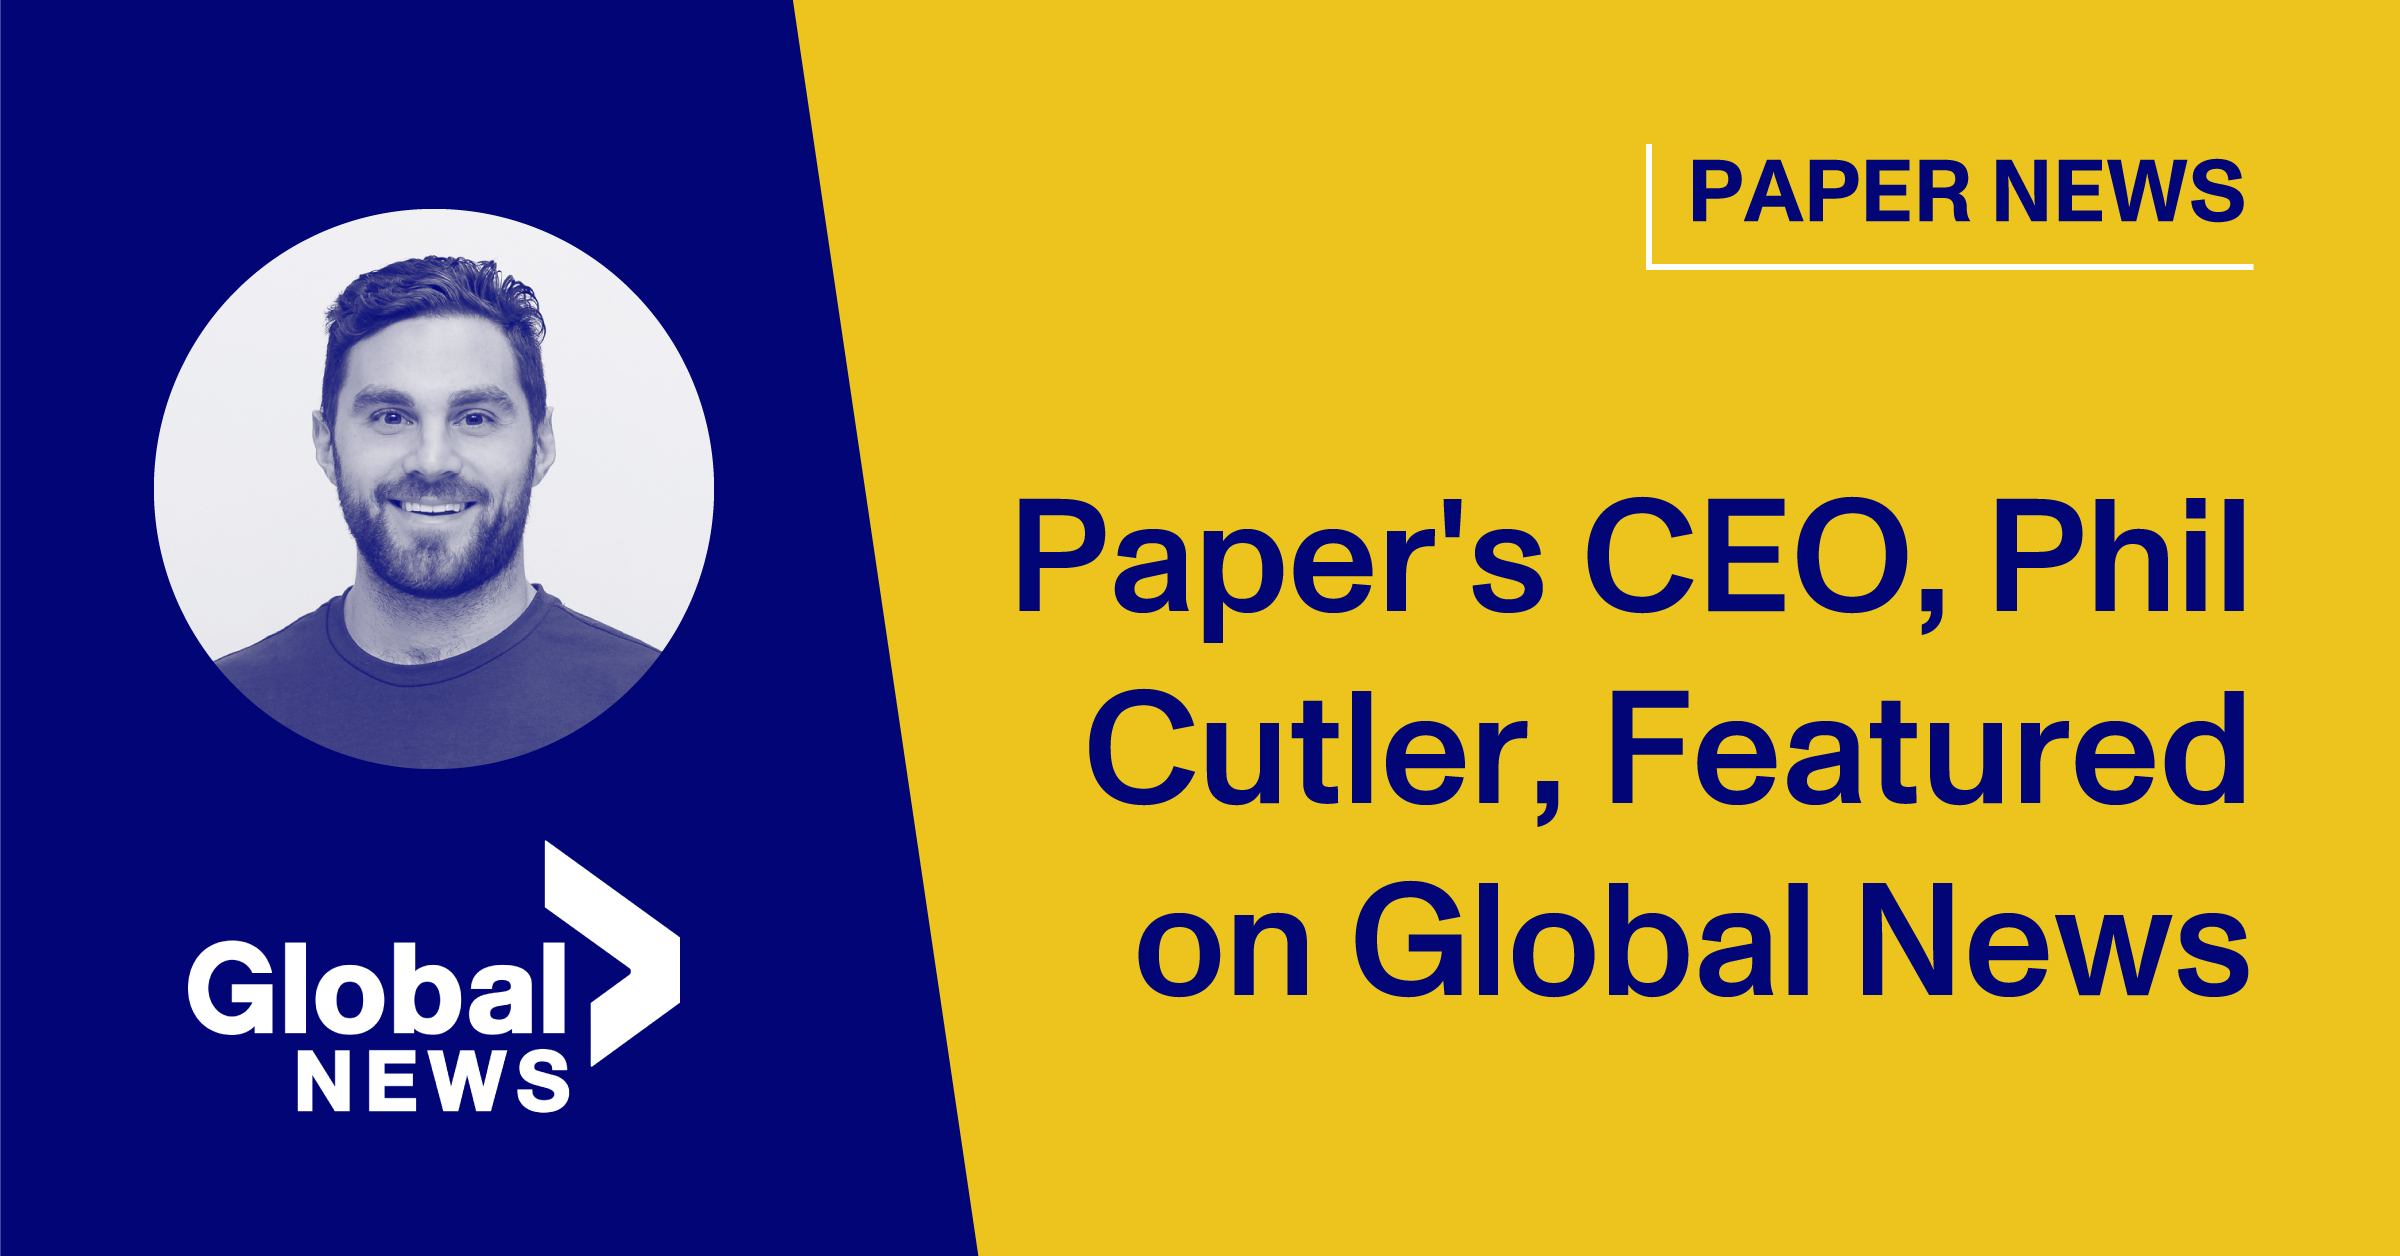 Blog Thumbnail of Paper's CEO, Phil Cutler, Featured on Global News